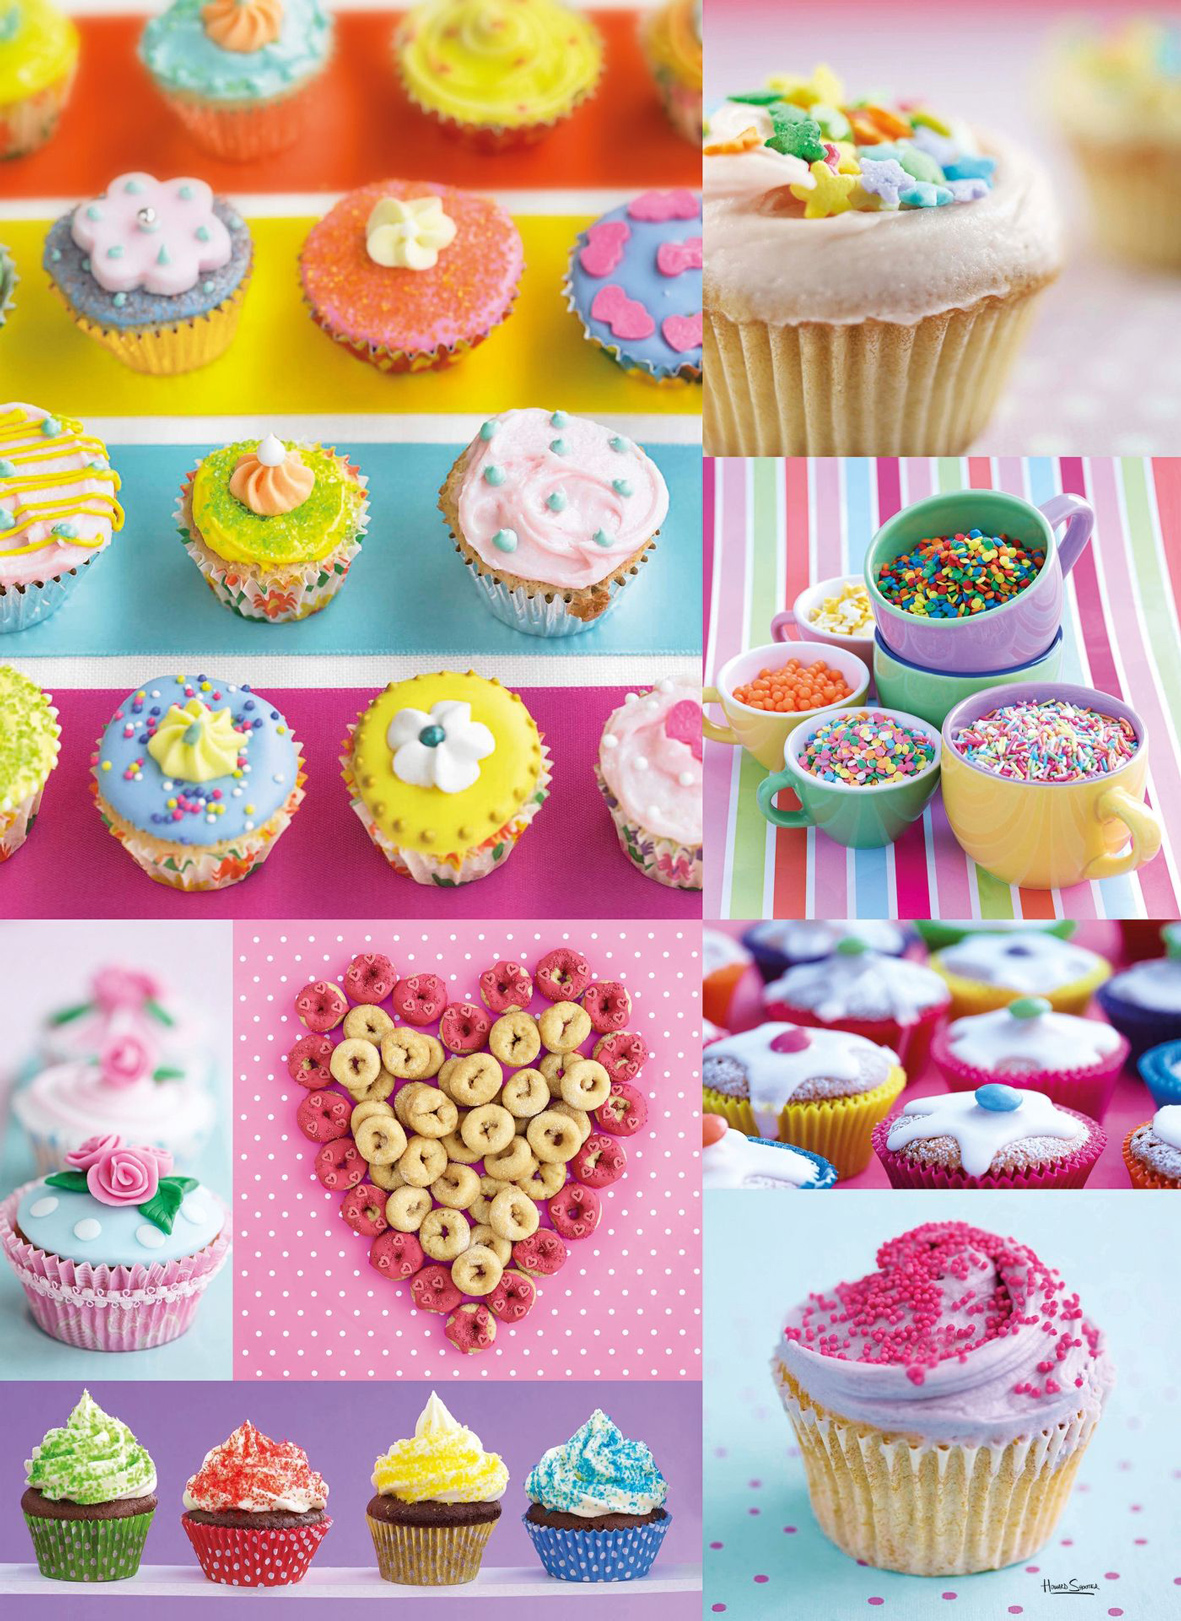 Sweet Donuts Food and Drink Jigsaw Puzzle